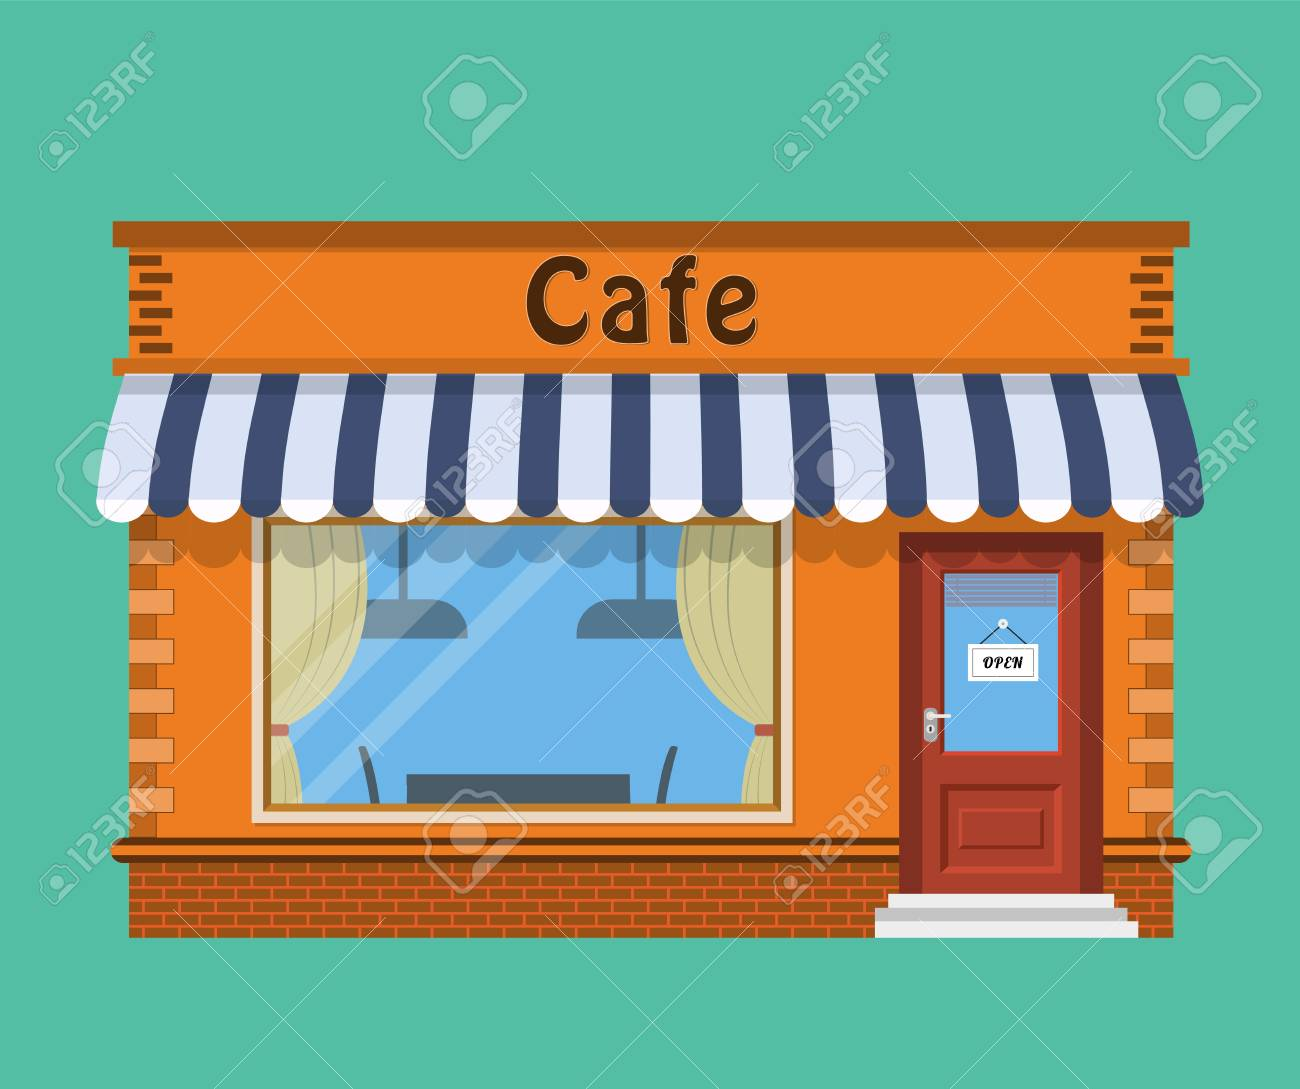 Cafe Shop Exterior Royalty Free Cliparts Vectors And Stock Illustration Image 82898692